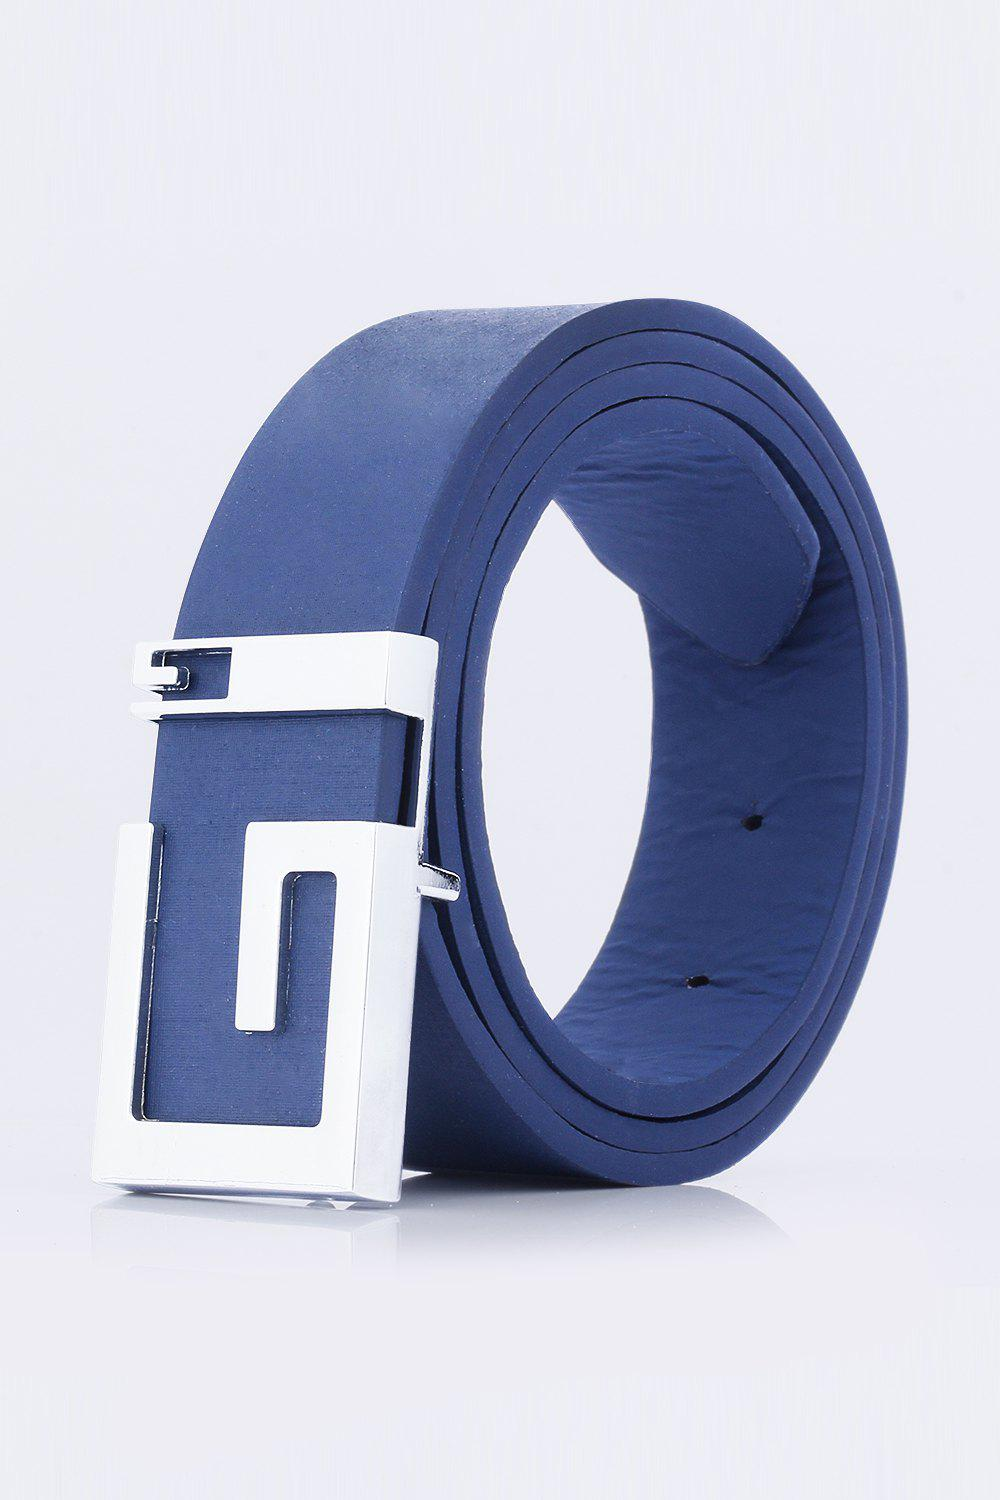 Stylish Letter G Shape Buckle Men's Casual PU Belt - DEEP BLUE